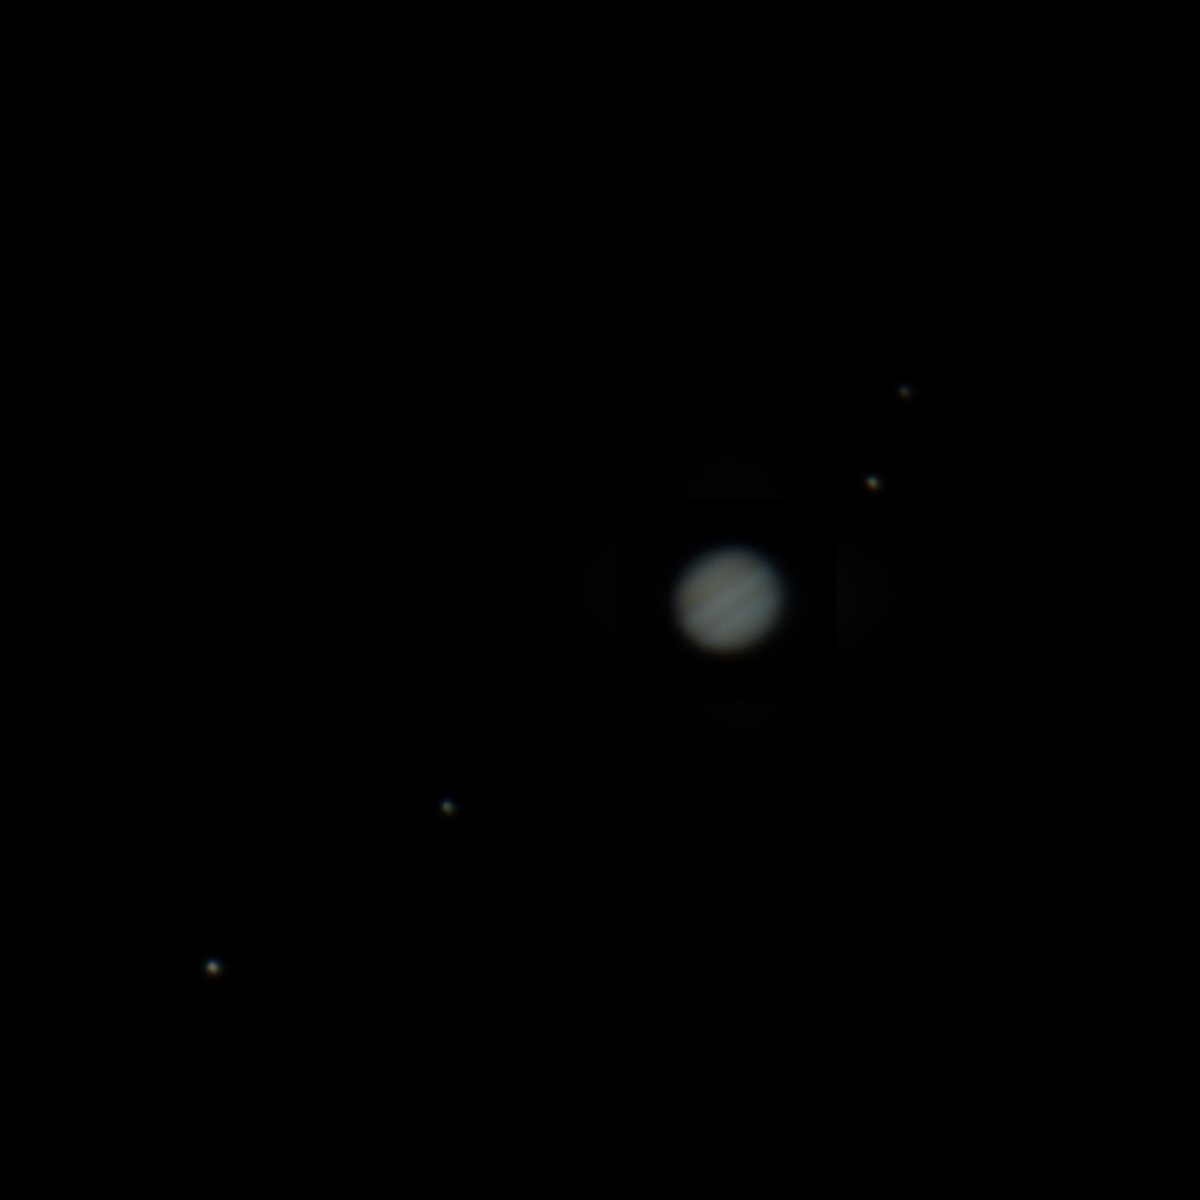 Jupiter and Moons, two images superposed one on top of the other with GIMP